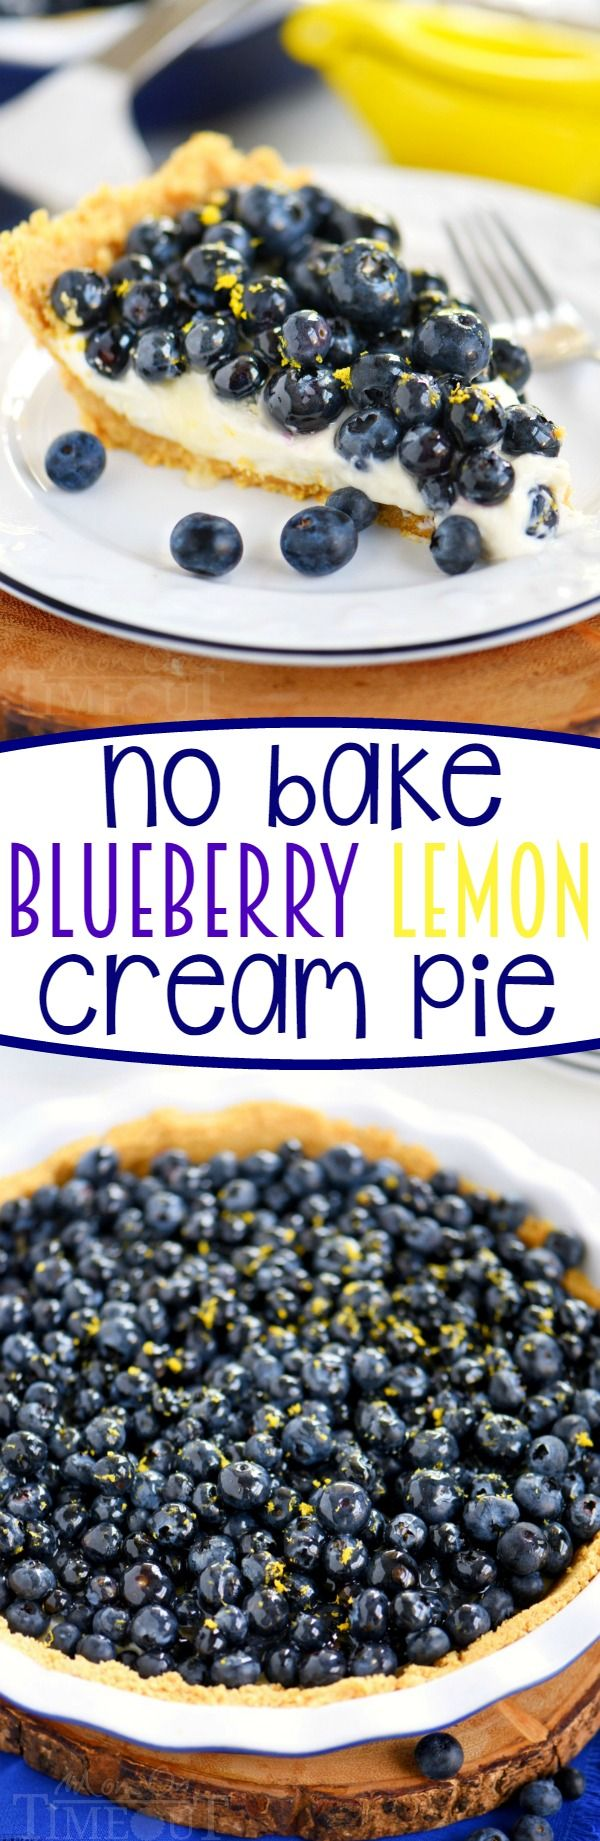 Get ready to wow your taste buds with this easy No Bake Blueberry Lemon Cream Pie! It's a party in your mouth! A secret ingredient adds loads of tart, fresh, lemon flavor that's impossible to resist!: